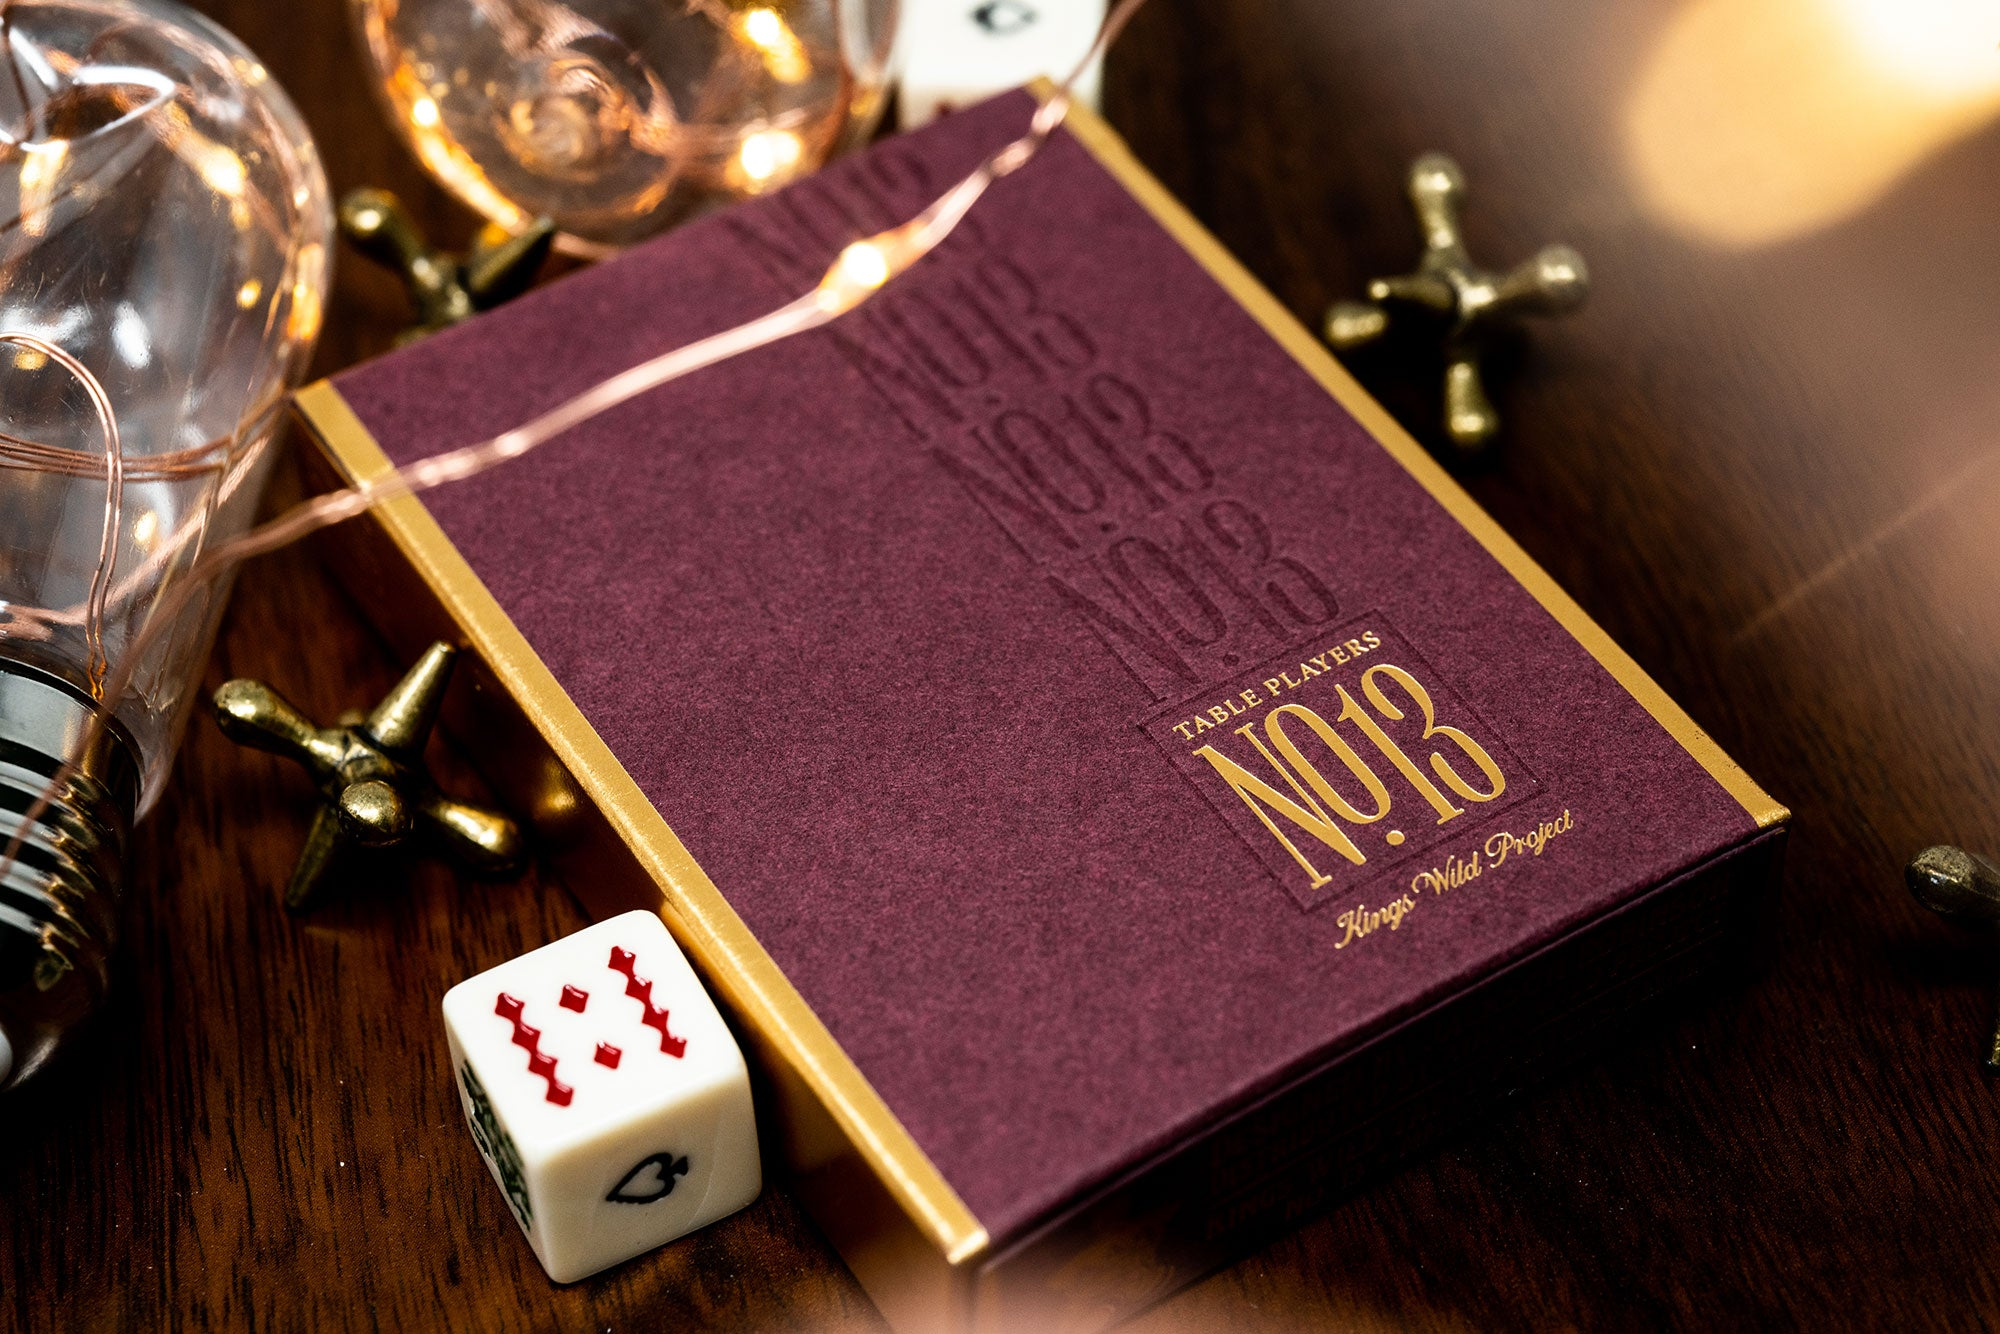 No. 13 Table Players Edition - Standard Edition